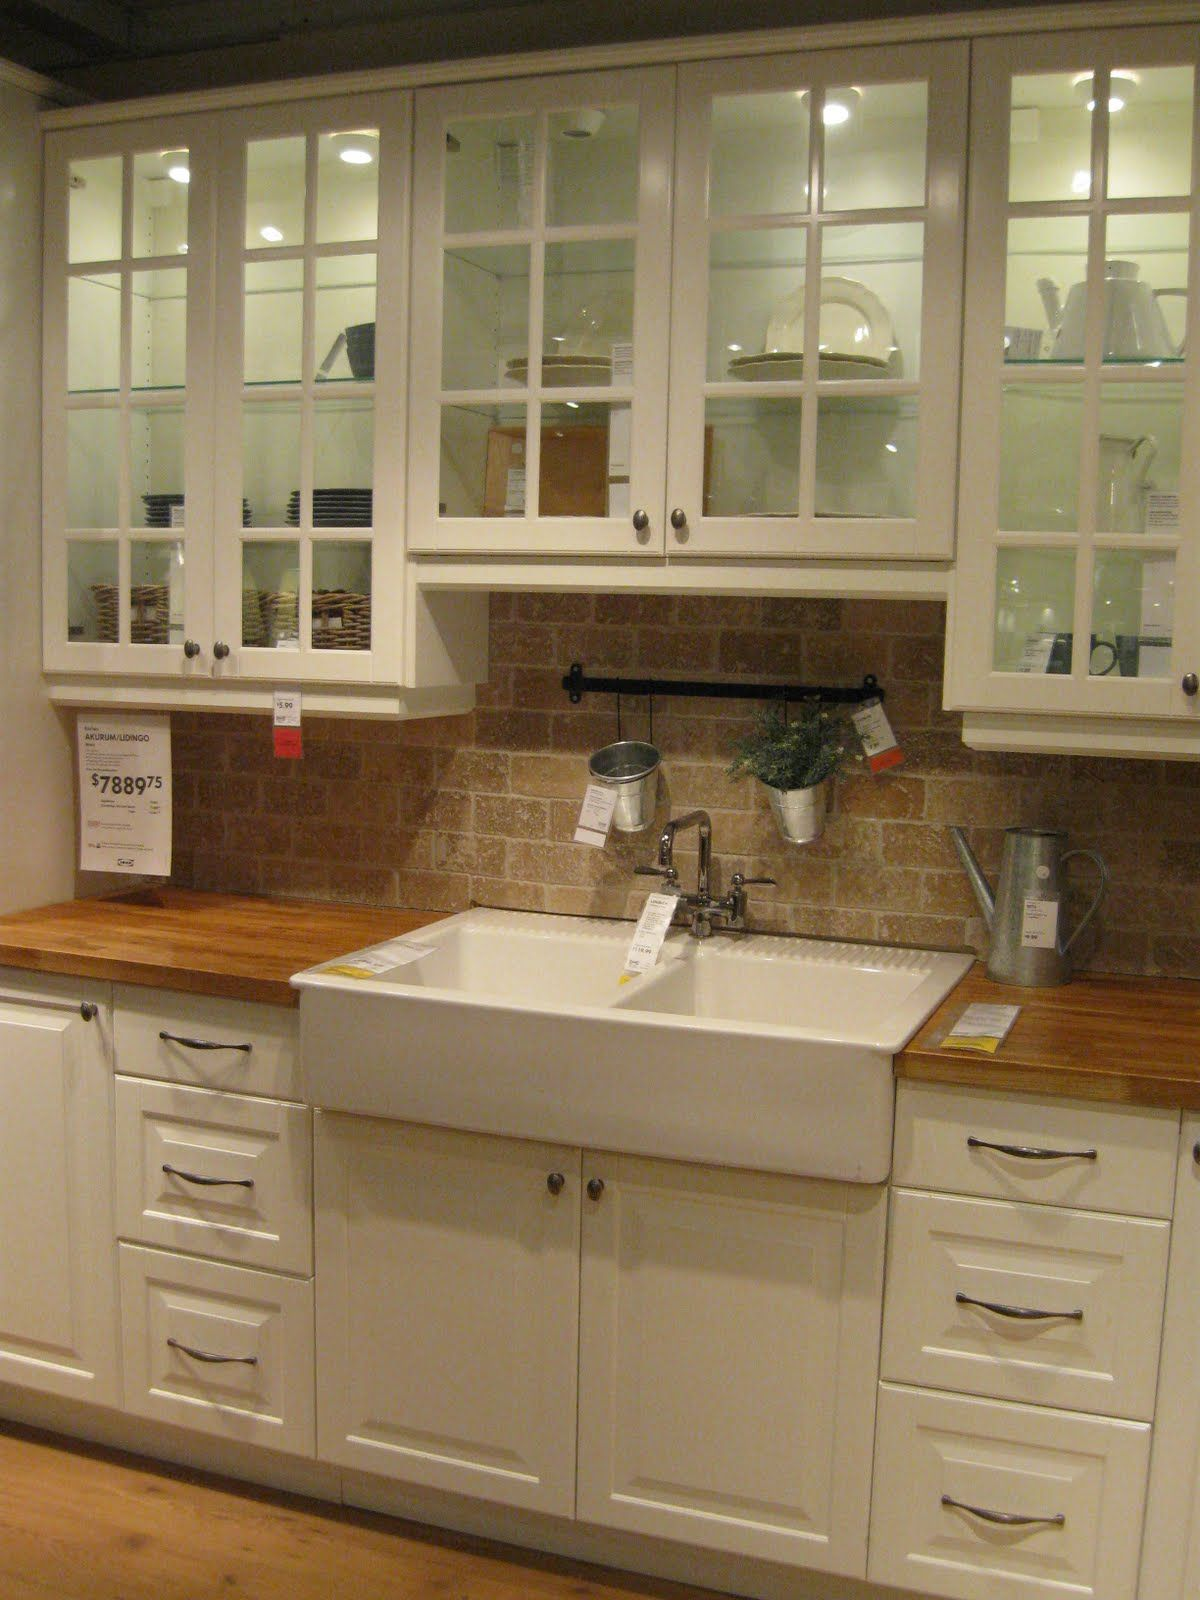 Drop In A Front Sink And Butcher Block Counter Tops